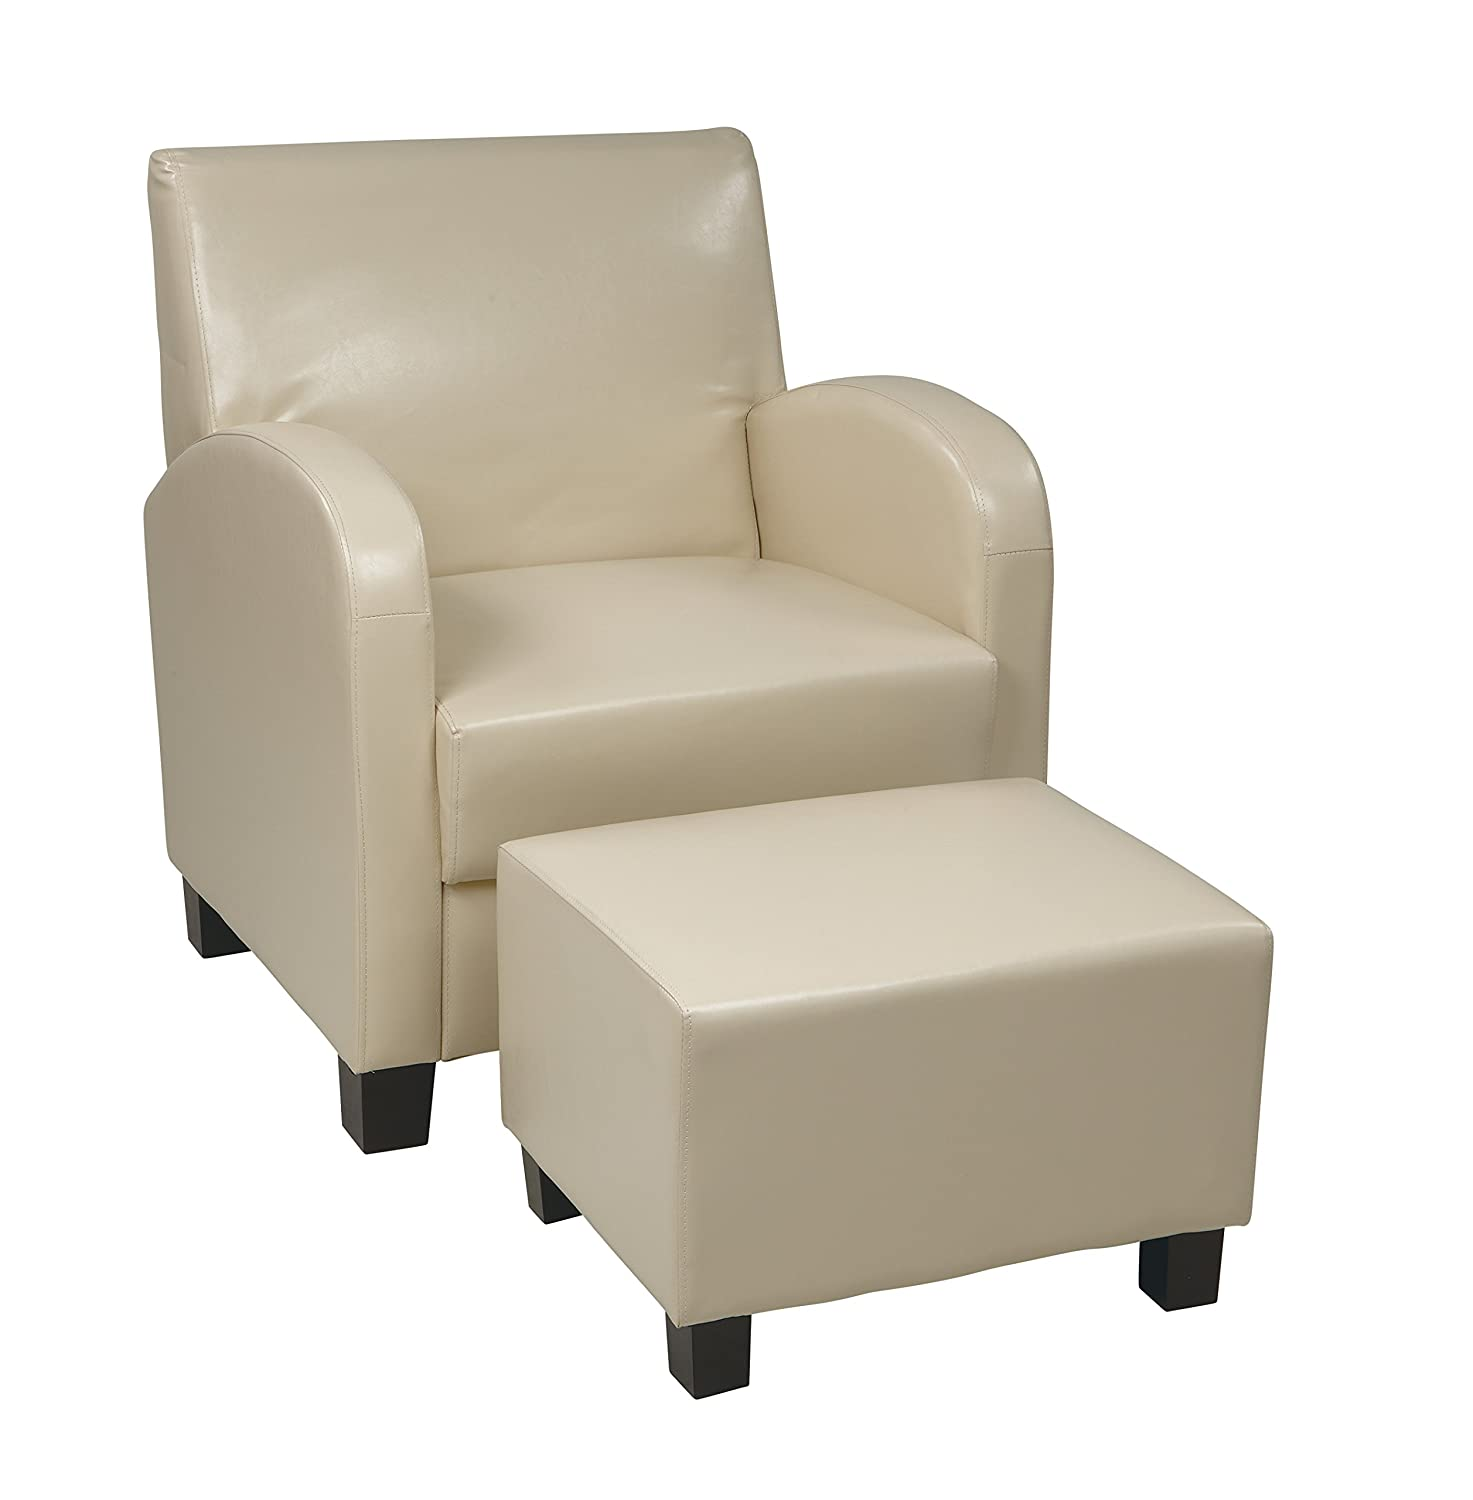 Amazon fice Star Metro Club Chair with Ottoman in Eco